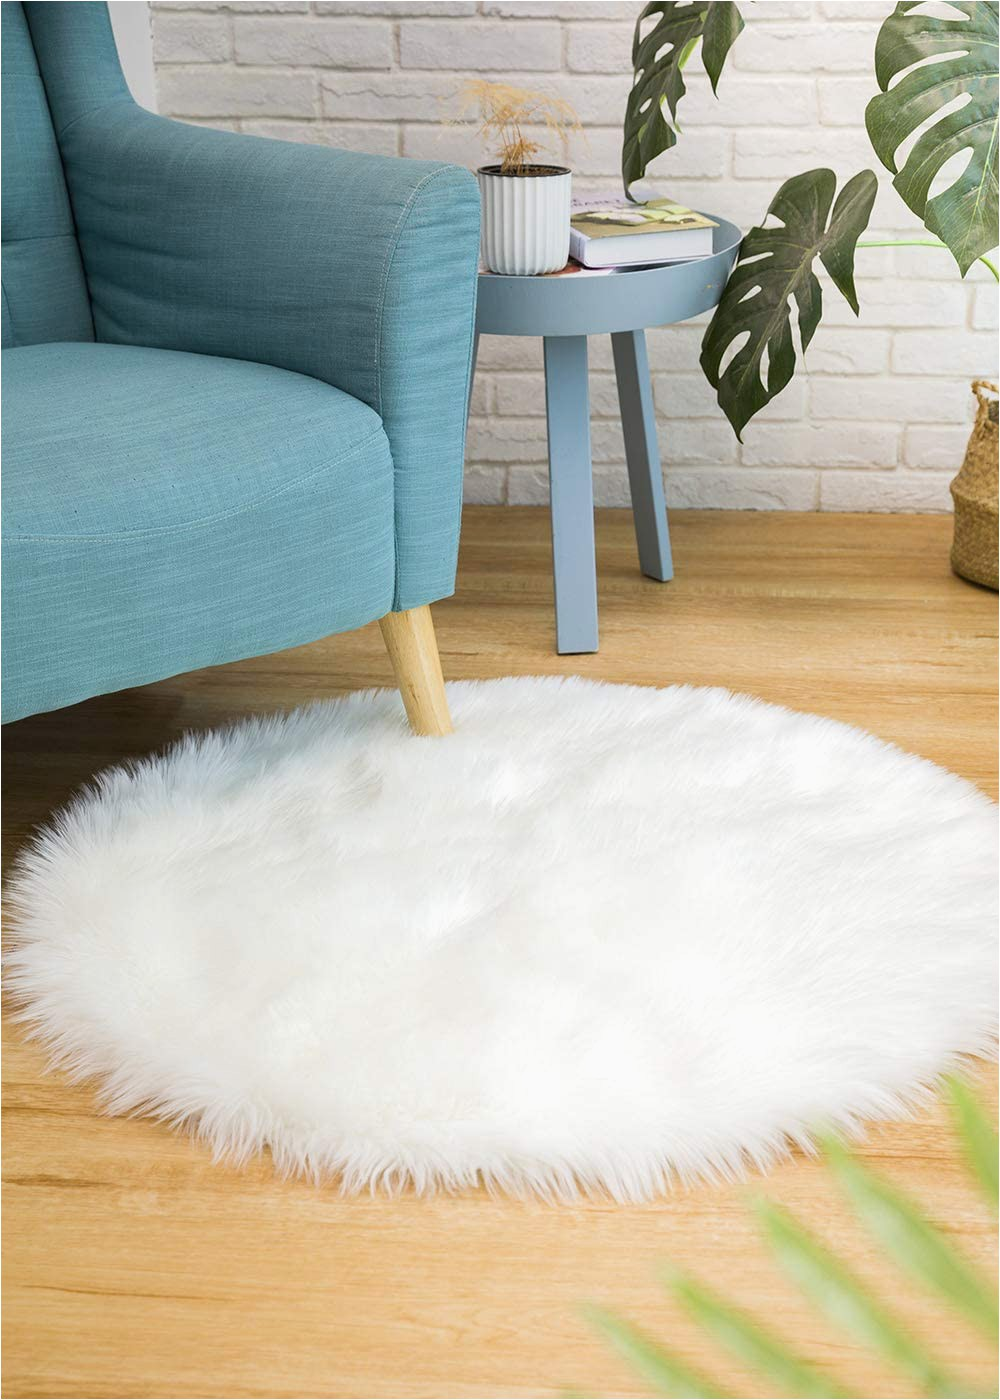 Cheap Faux Fur area Rugs Ciicool soft Faux Sheepskin Fur area Rugs Round Fluffy Rugs for Bedroom Silky Fuzzy Carpet Furry Rug for Living Room Girls Rooms White 3 X 3 Feet